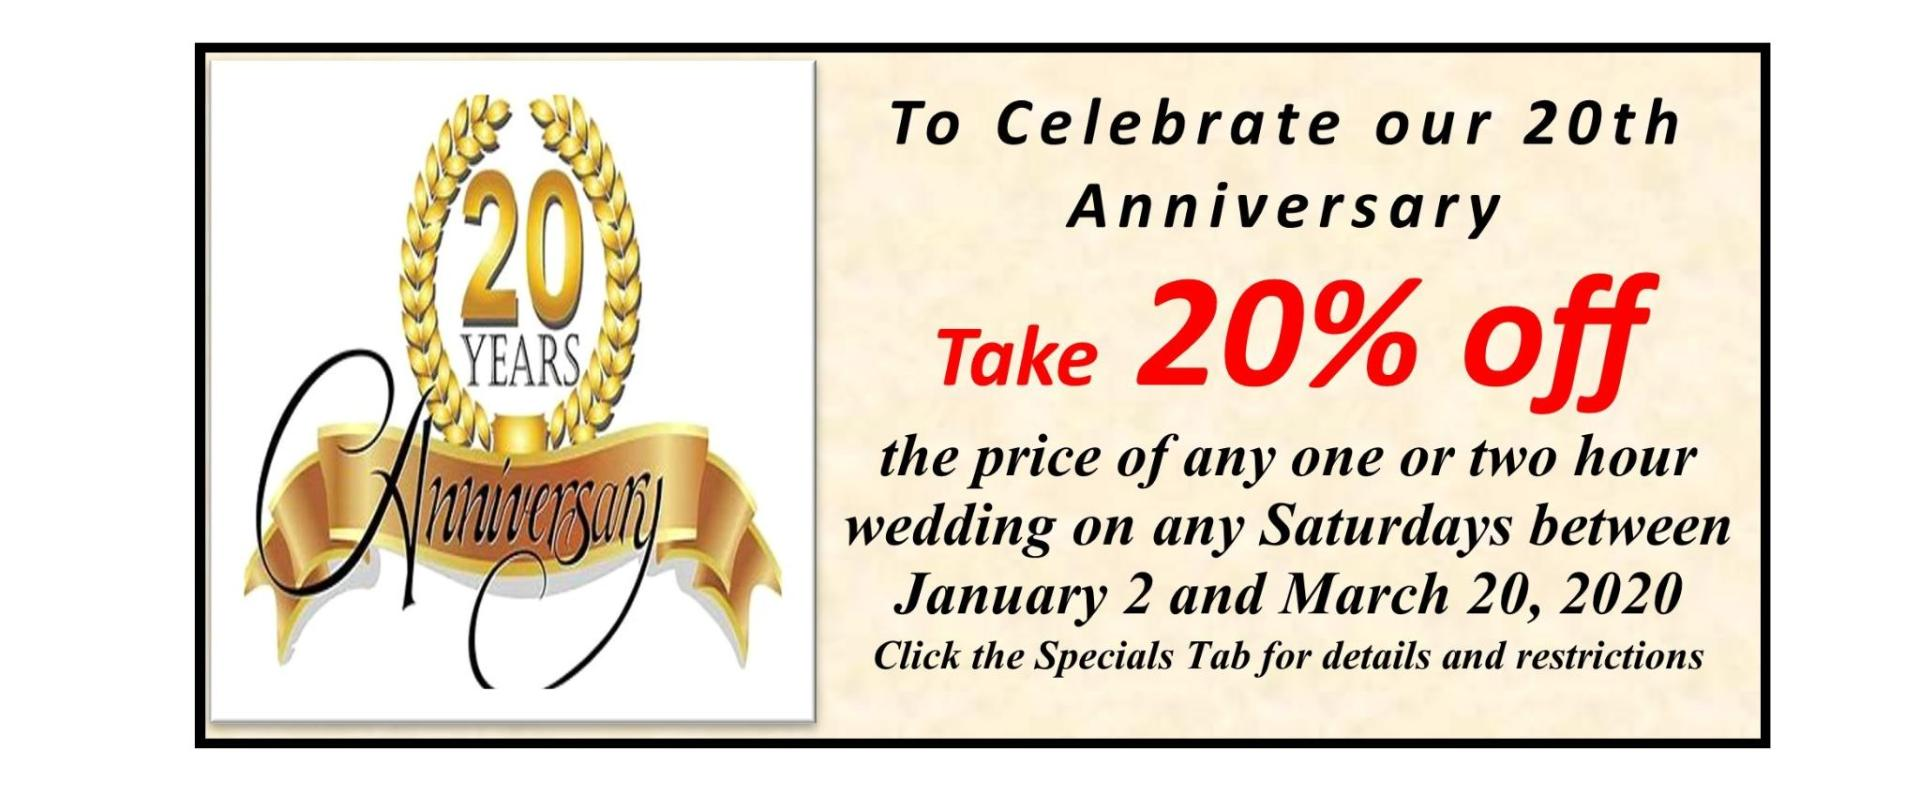 GWC 20 year anniversary coupon.jpg